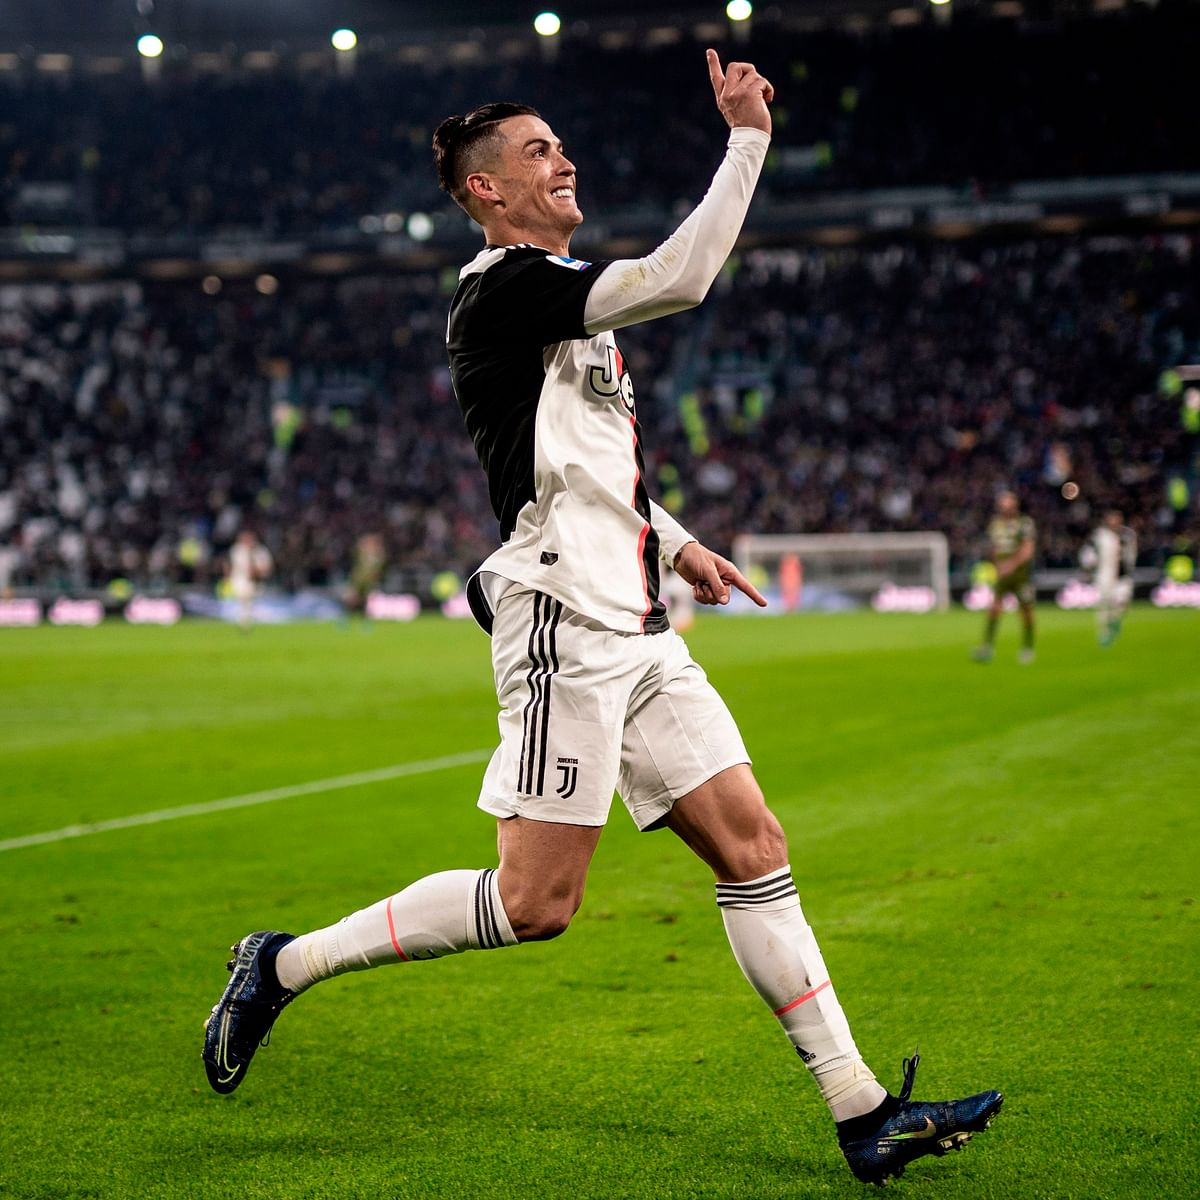 Serie A: Cristiano Ronaldo begins the year in style